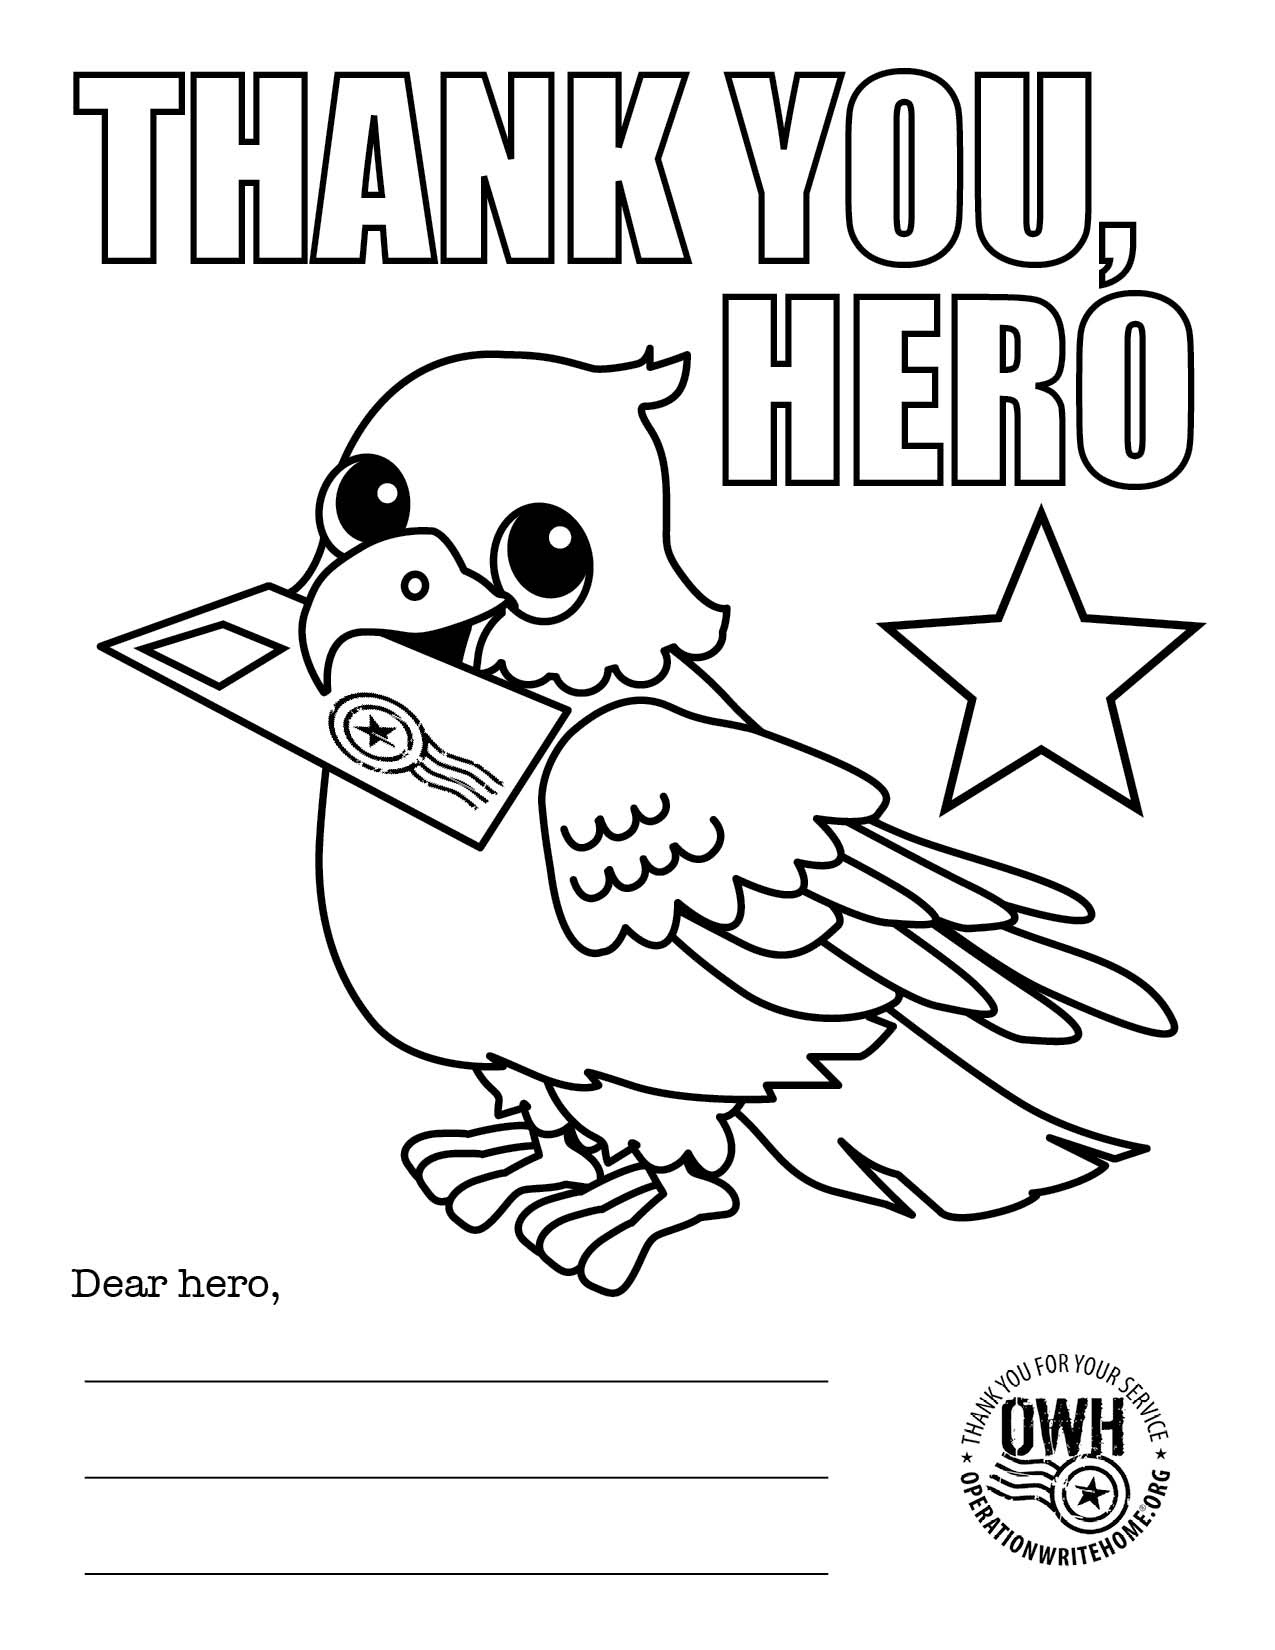 Coloring Pages : Coloring Ideas Happy Veterans Dayring Pages - Veterans Day Free Printable Cards